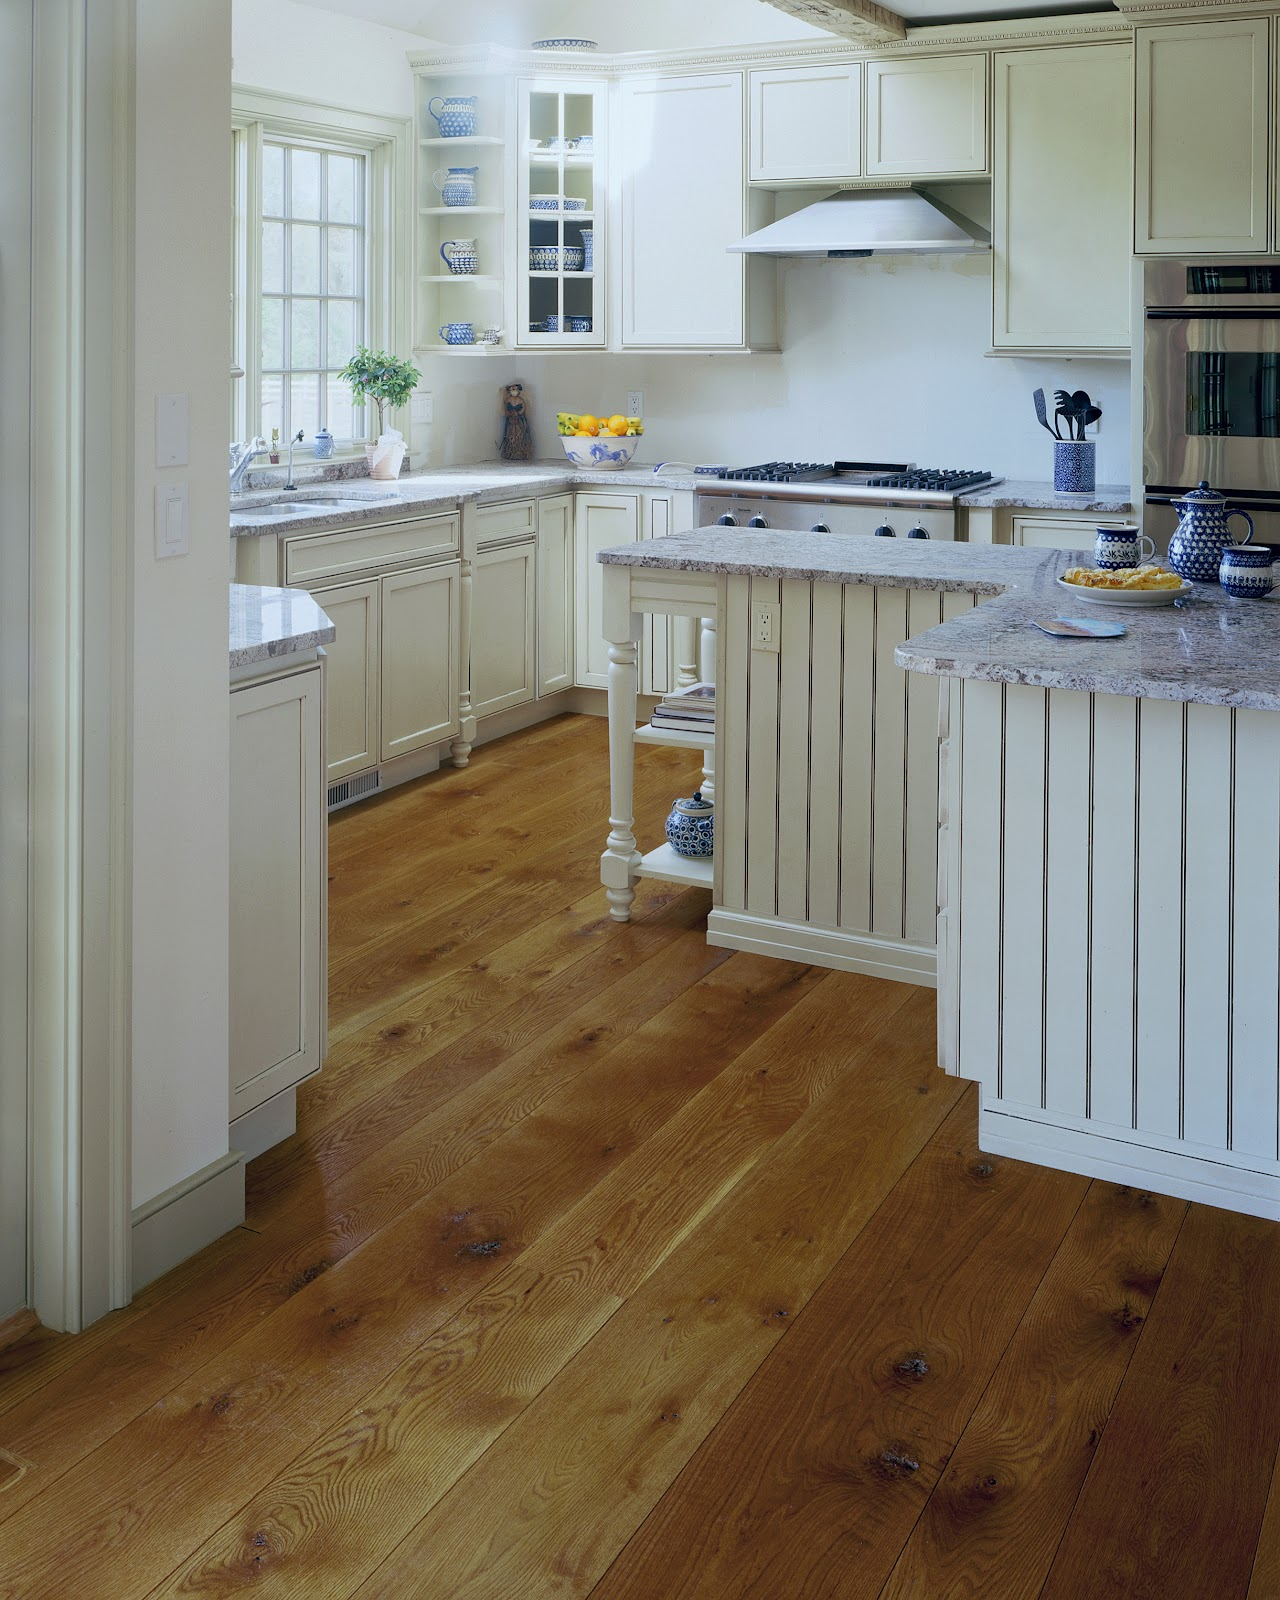 Wide plank hardwood flooring flooring ideas home for Hardwood floors kitchen